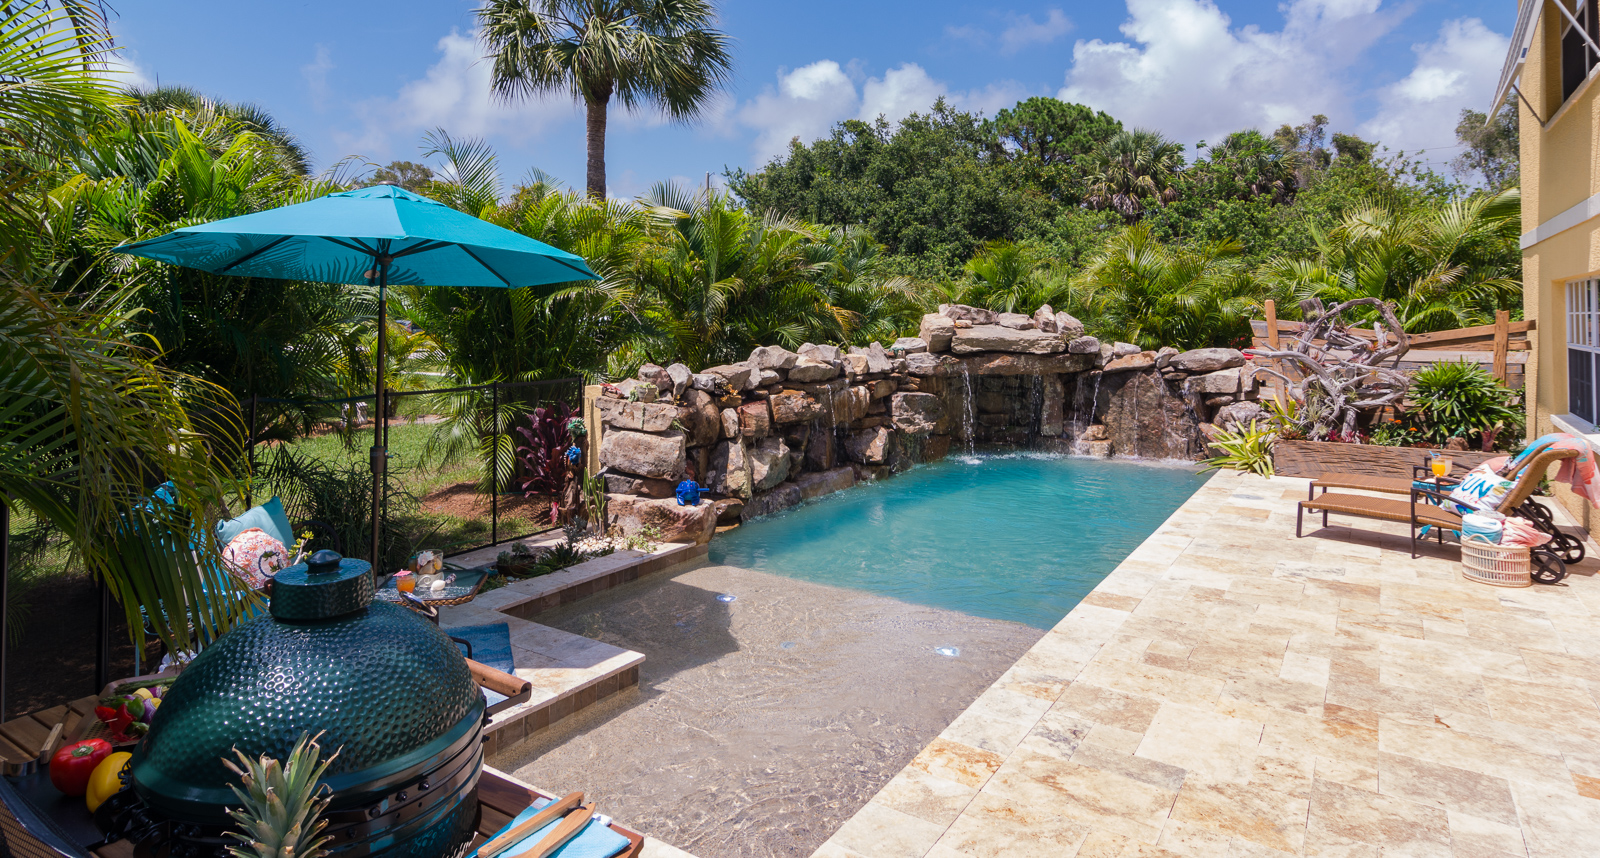 Insane pools tv episode small yard big dreams for Pool design tv show